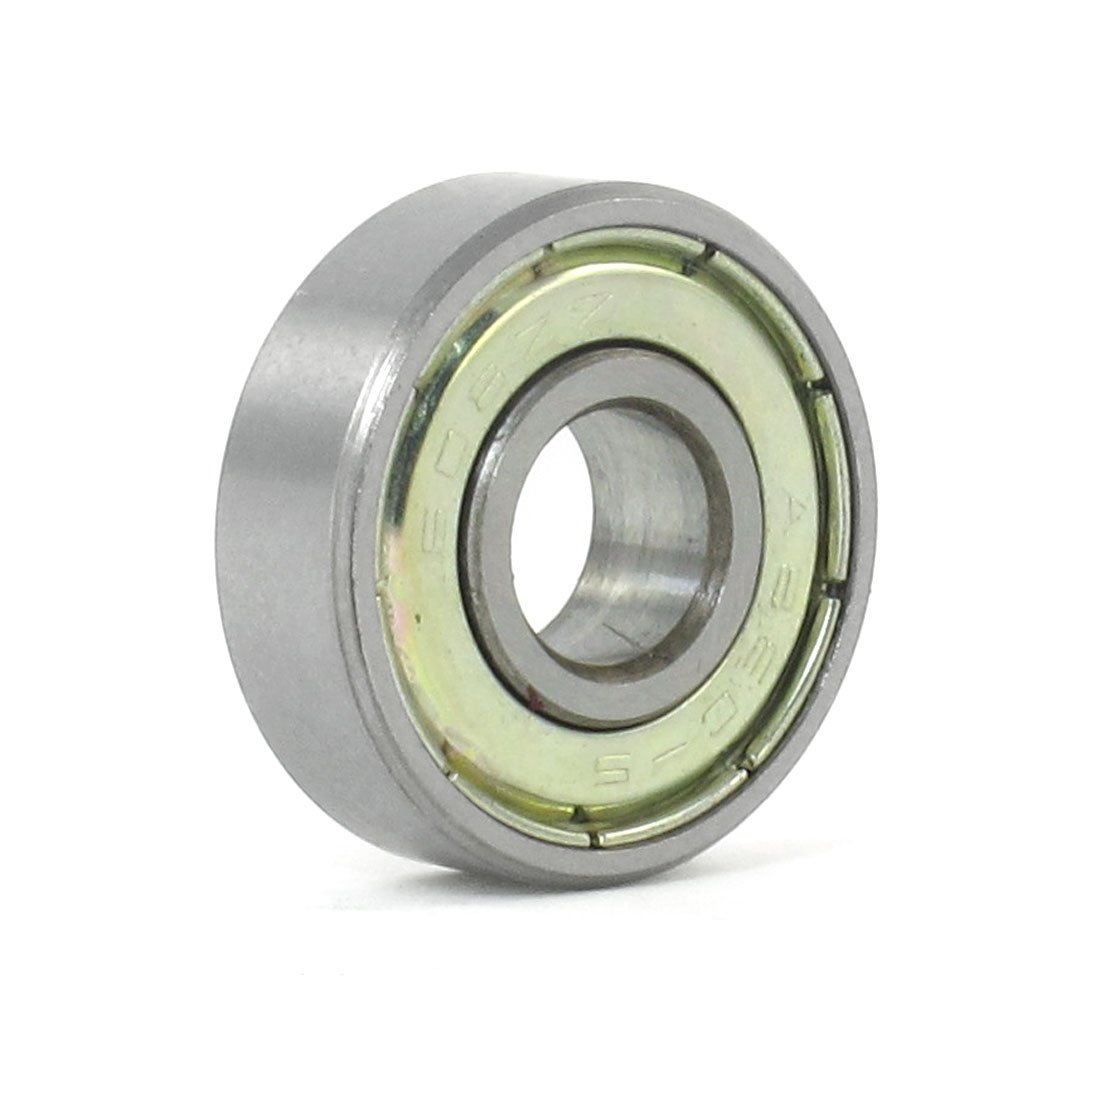 22mm x 8mm x 7mm 608ZZ Radial Shielded Deep Groove Ball Bearing Silver Tone